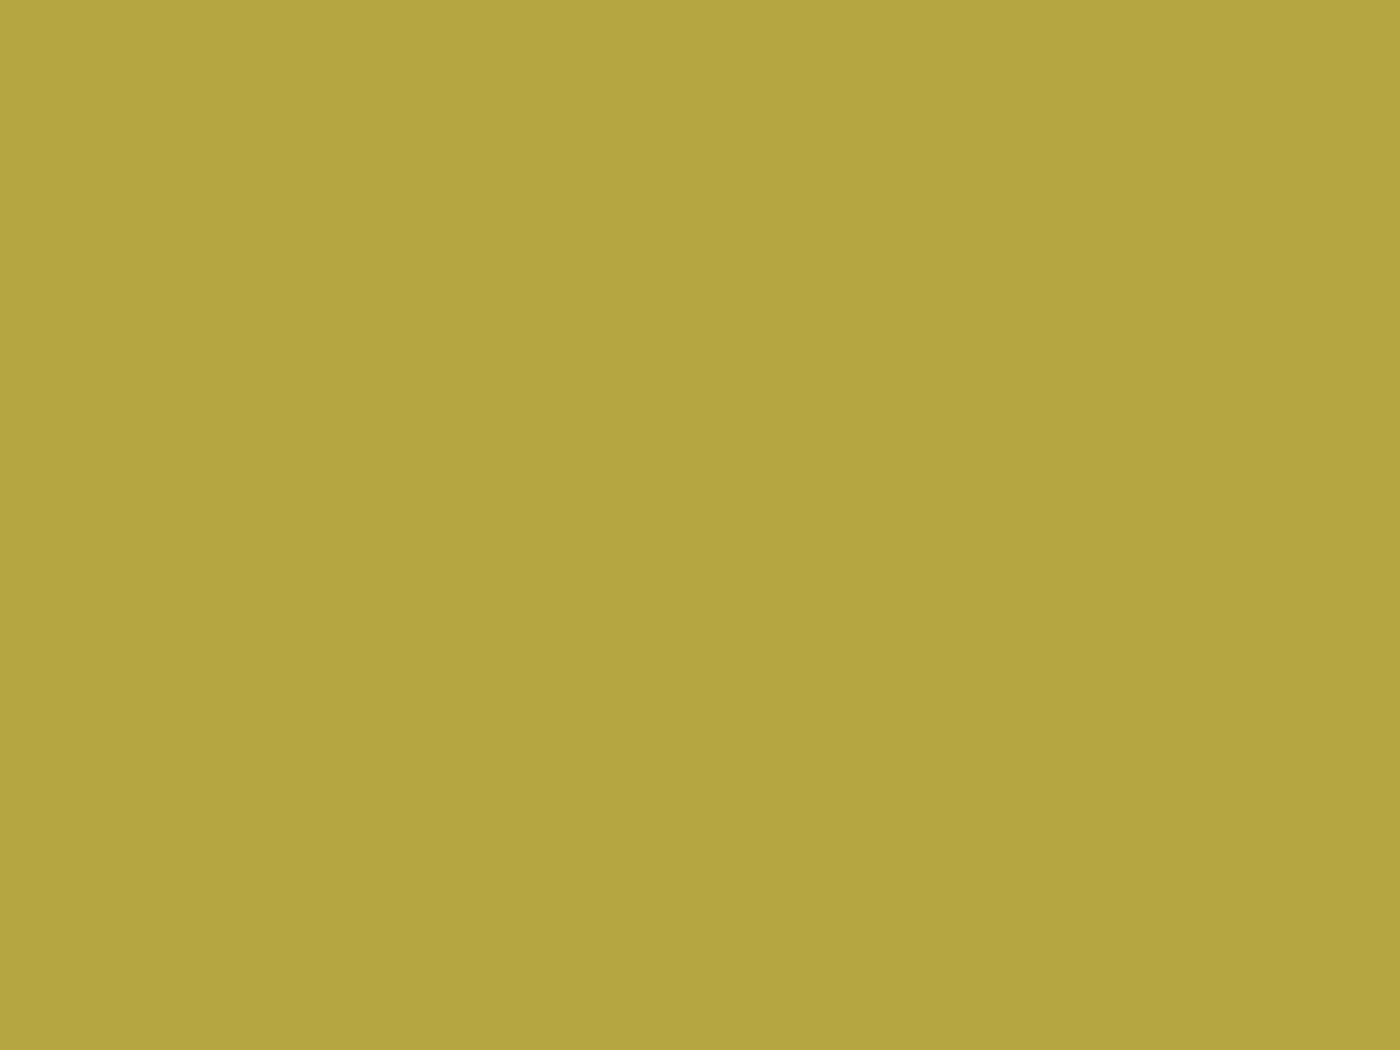 1400x1050 Brass Solid Color Background